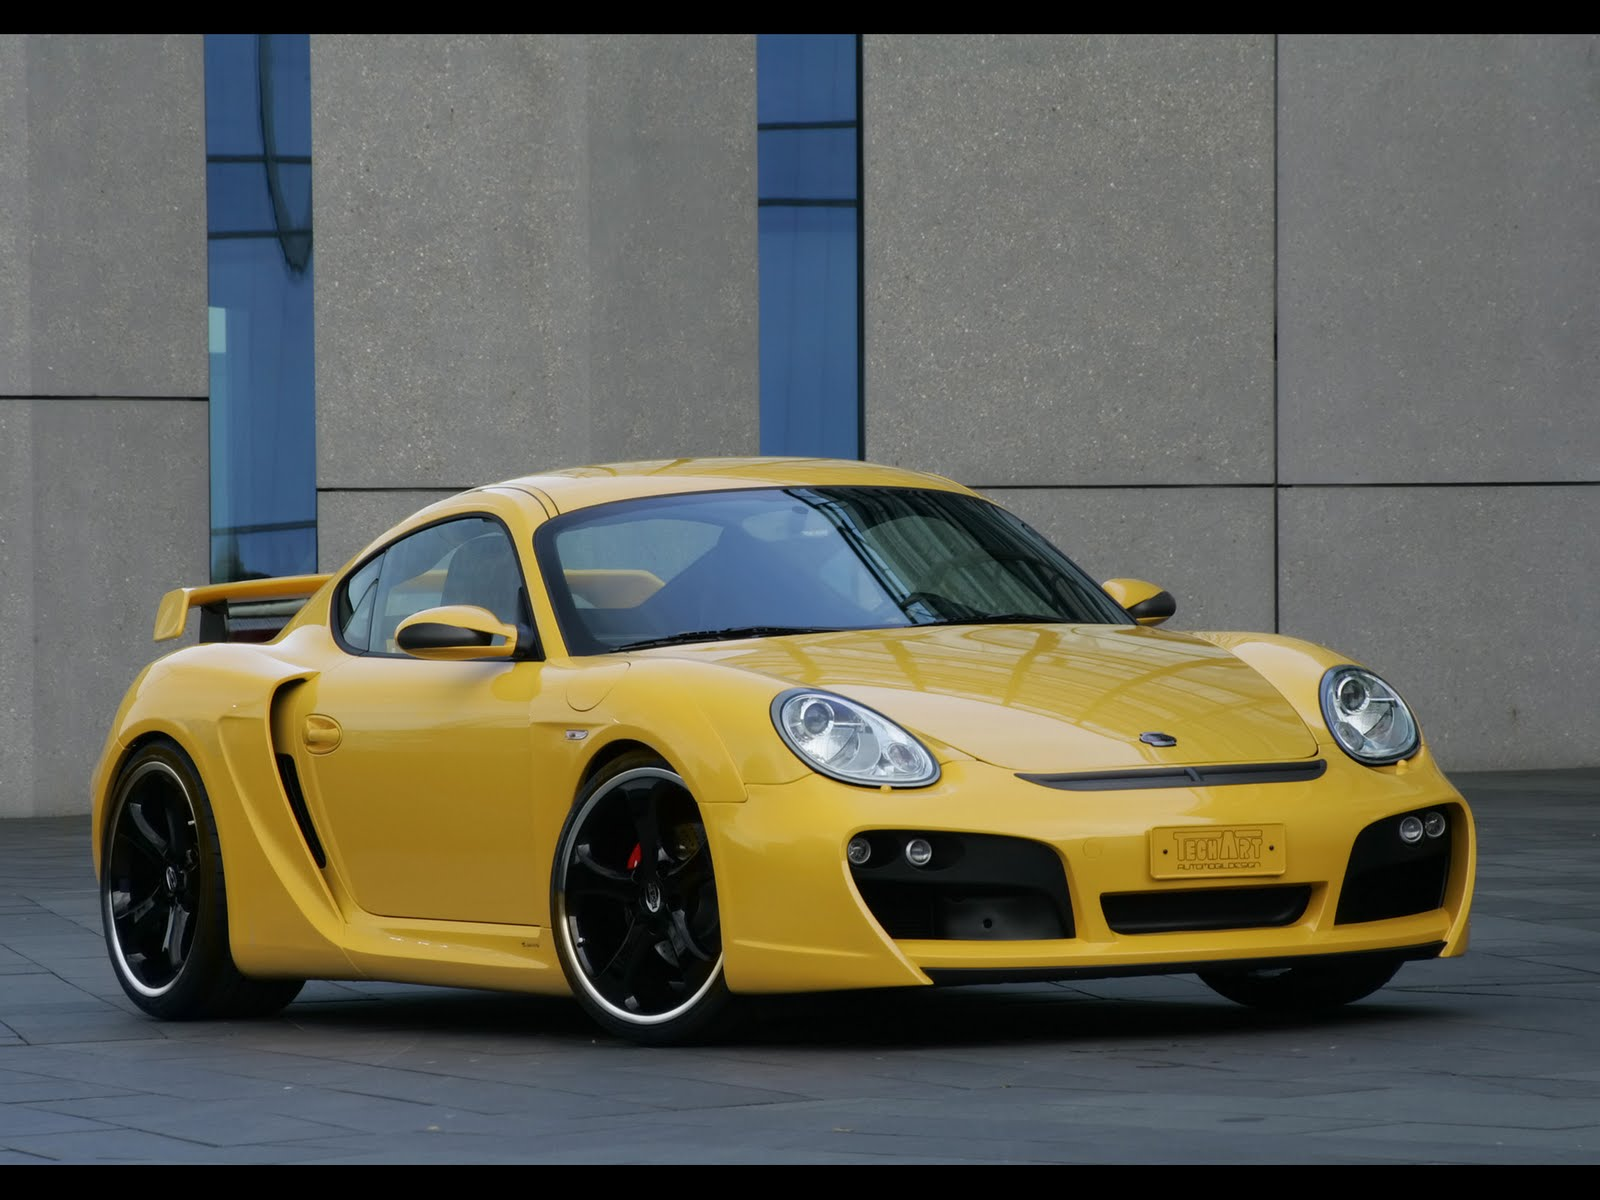 Porsche Cayman S 2011 photo - 8